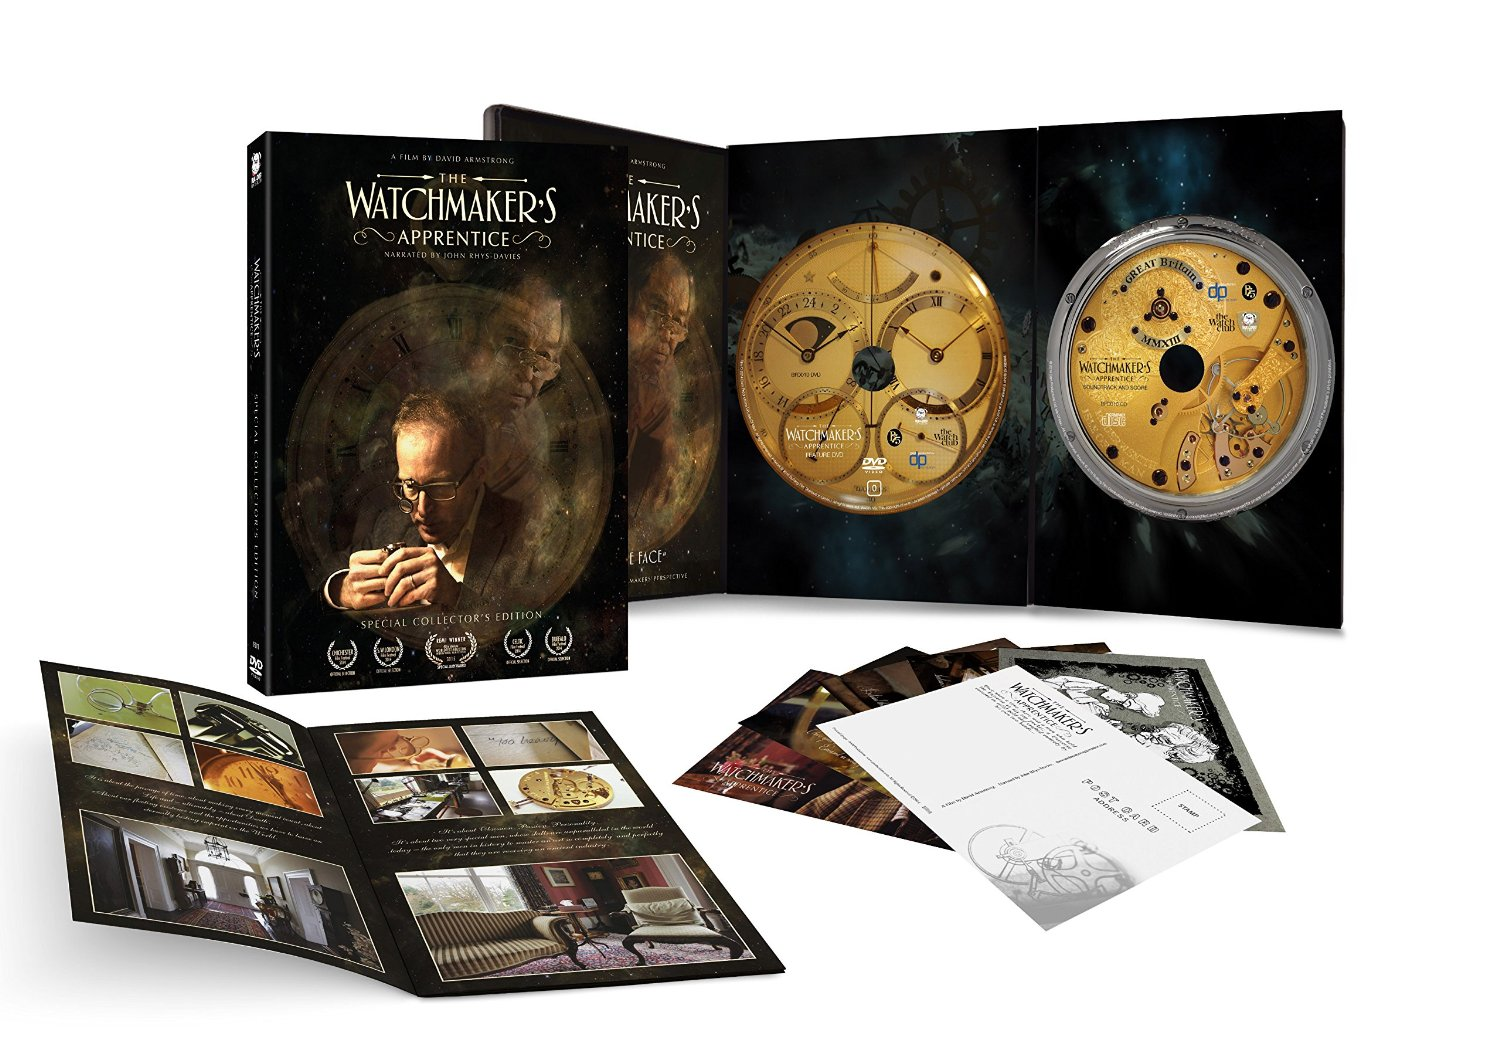 Watchmaker's Collectors Edition